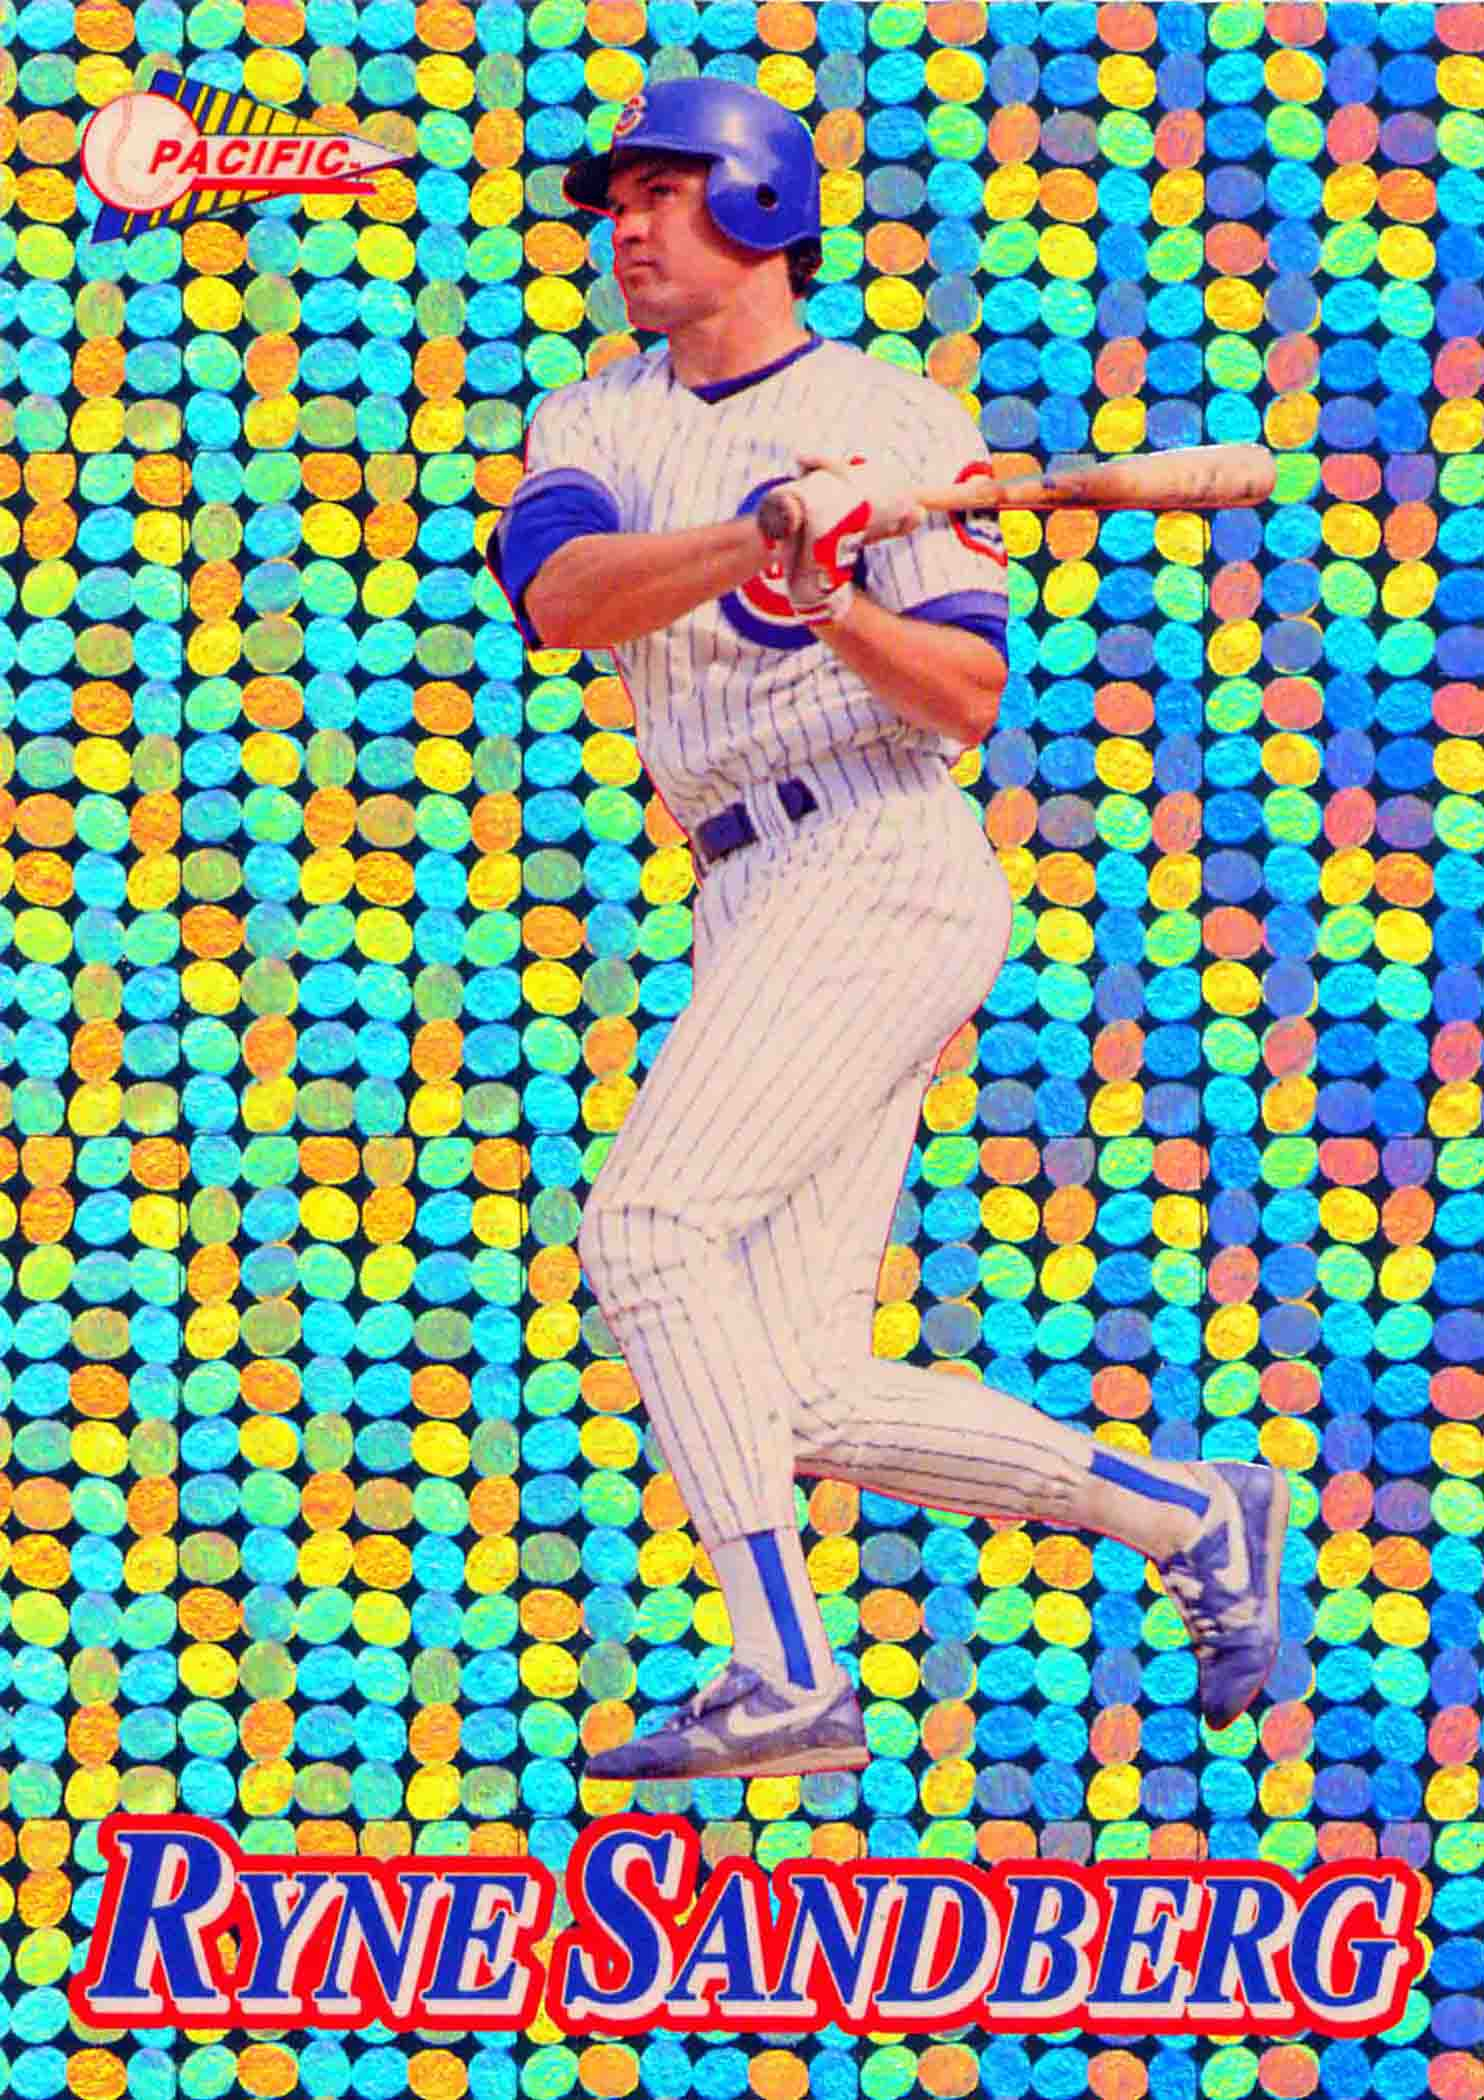 Most Valuable Baseball 1989 Donruss Cards